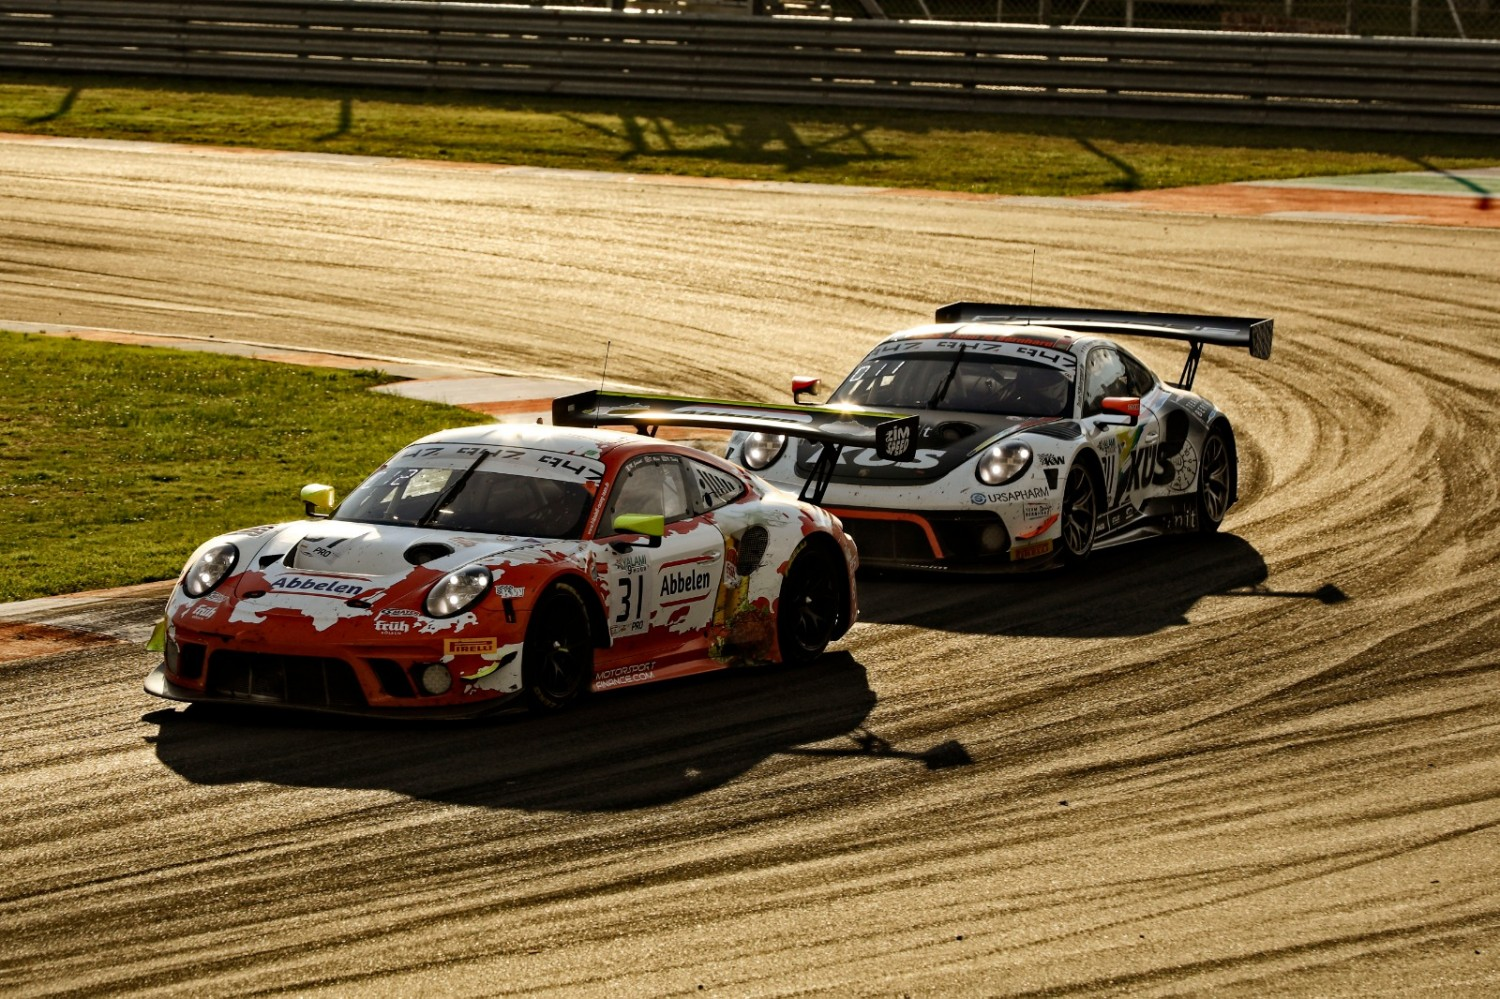 Reigning champions Porsche confirm 2020 Intercontinental entry